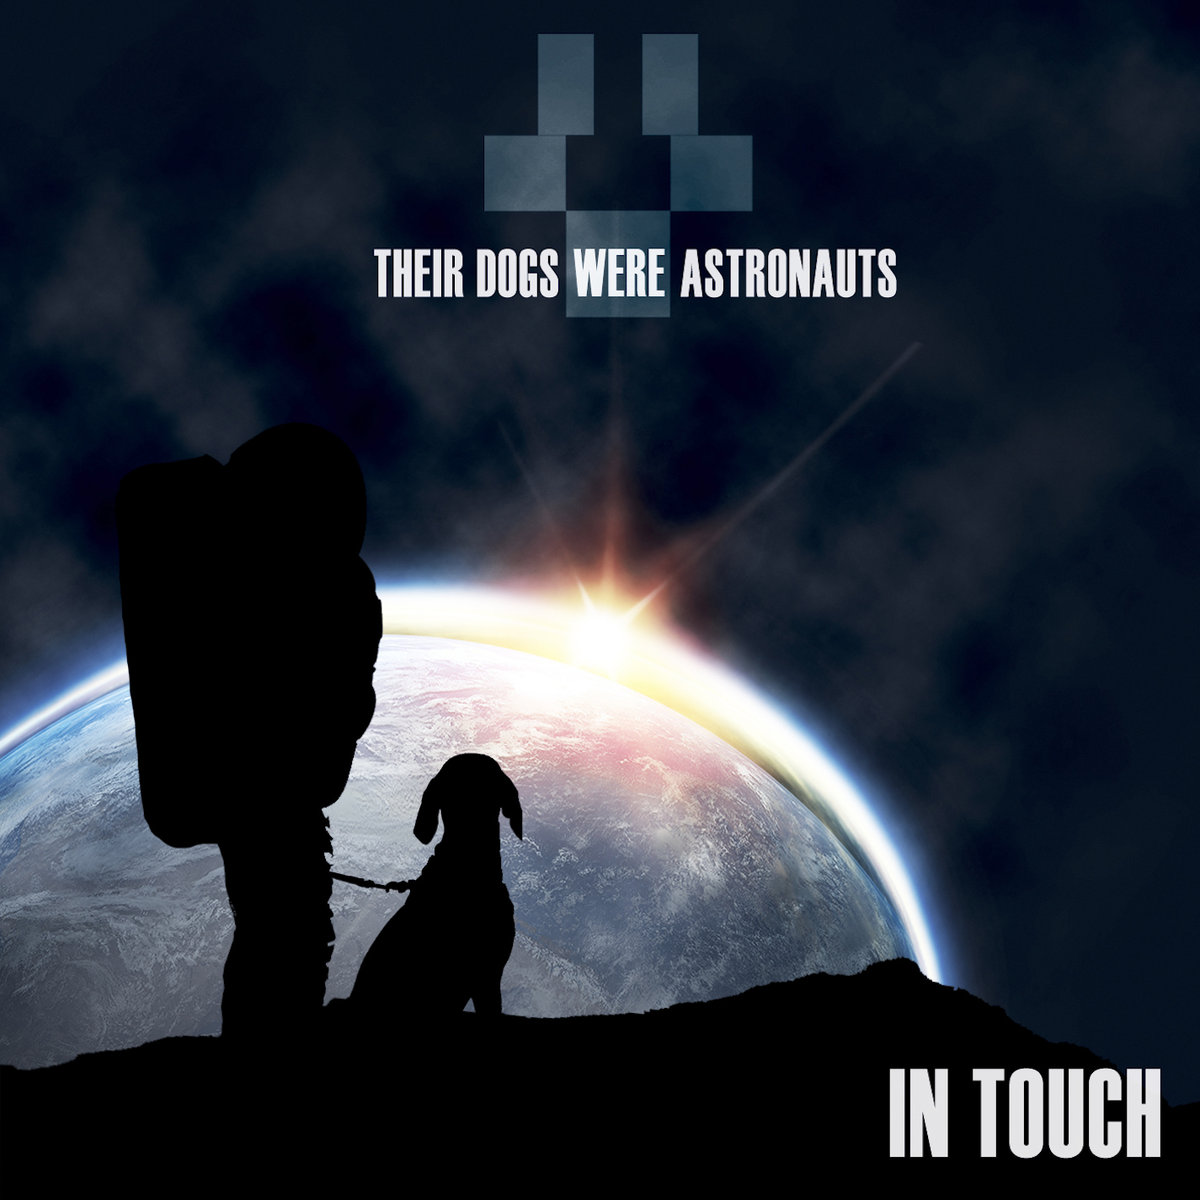 Their Dogs Were Astronauts - Extraterrestrial Motion @ 'In Touch' album (instrumental metal, metal)